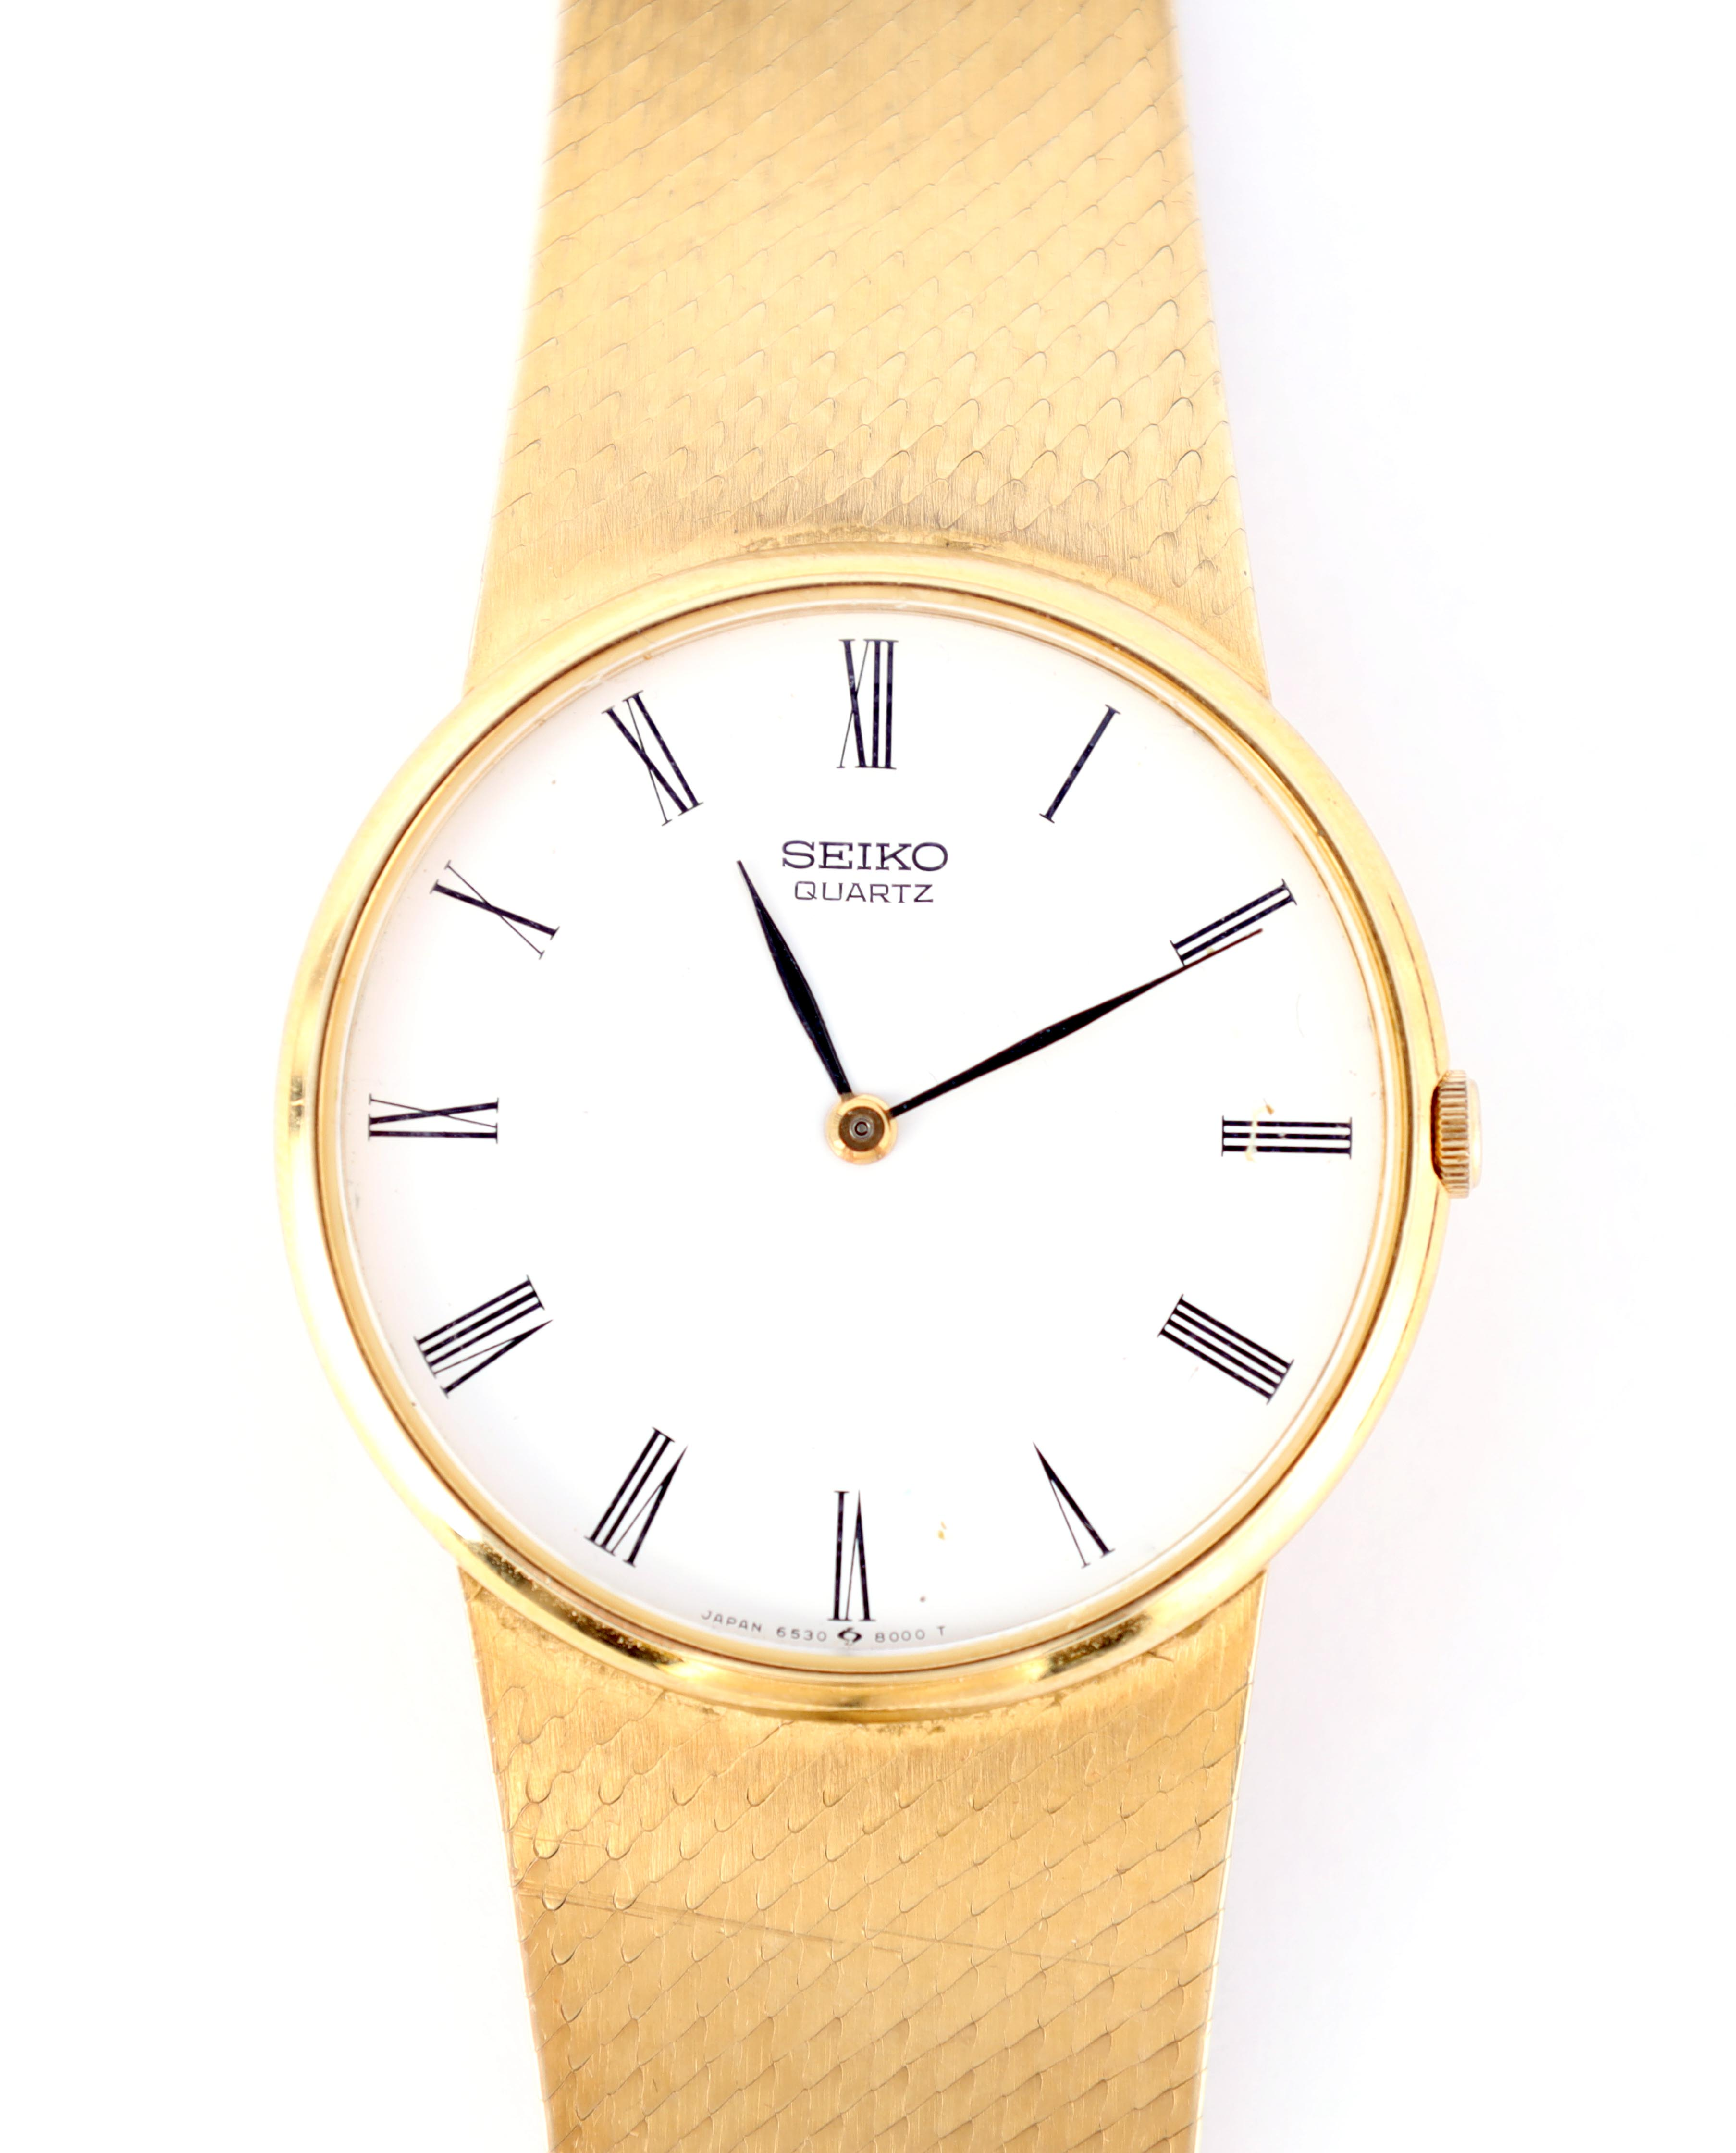 A GENTLEMAN'S 9CT GOLD SEIKO WRISTWATCH on original 9ct gold bracelet The white enamel dial with - Image 6 of 8